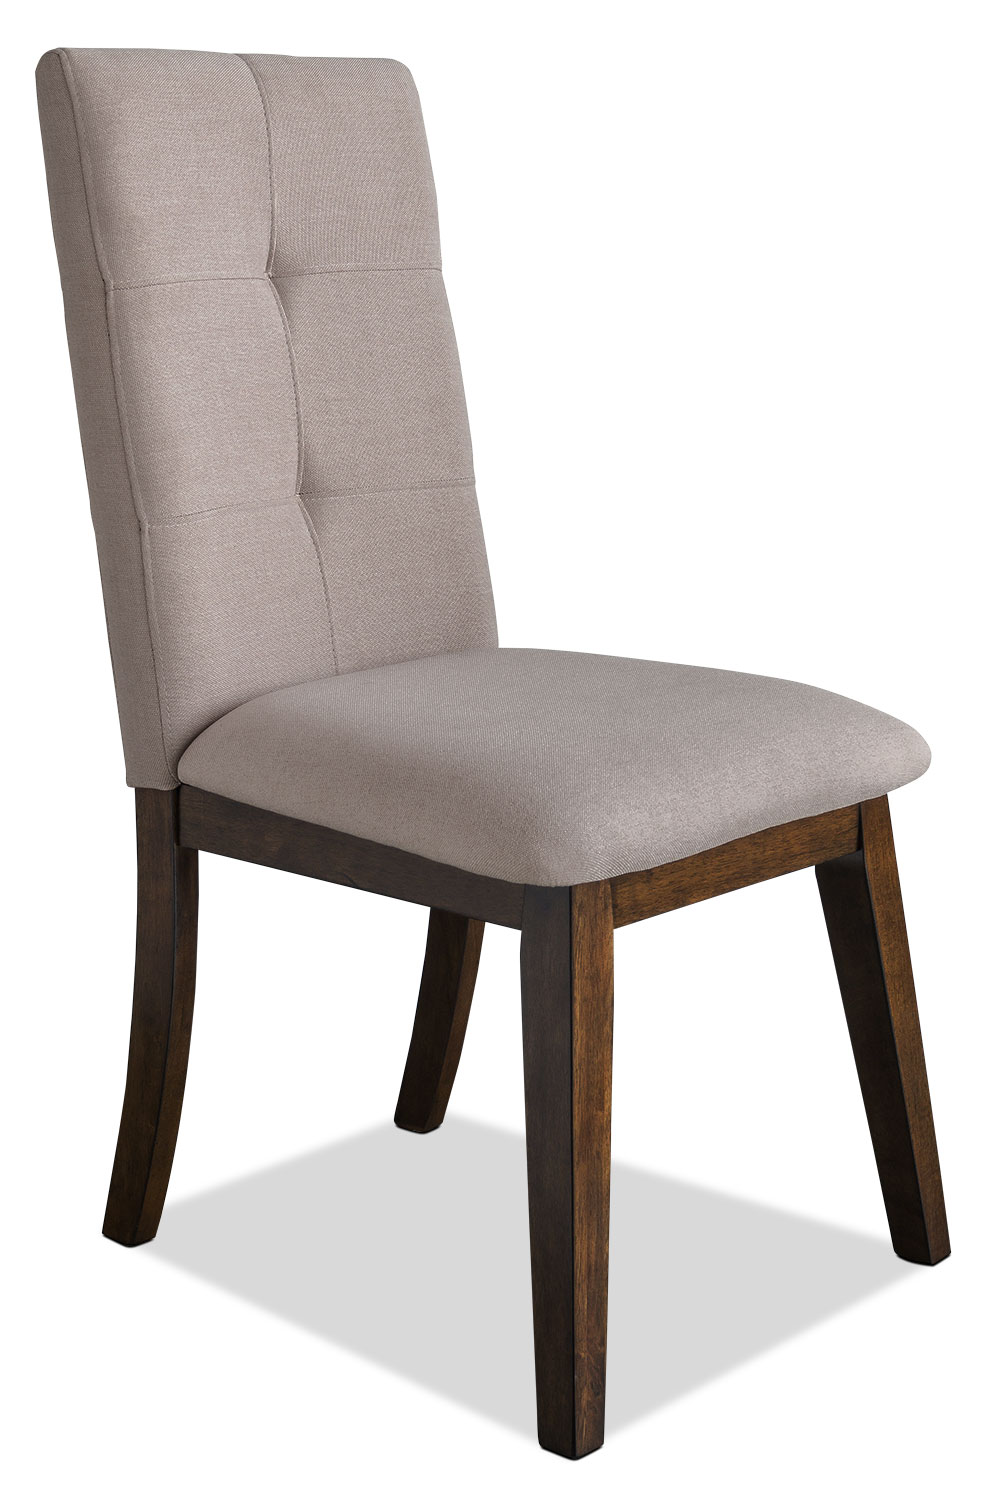 Chelsea Fabric Dining Chair – Beige